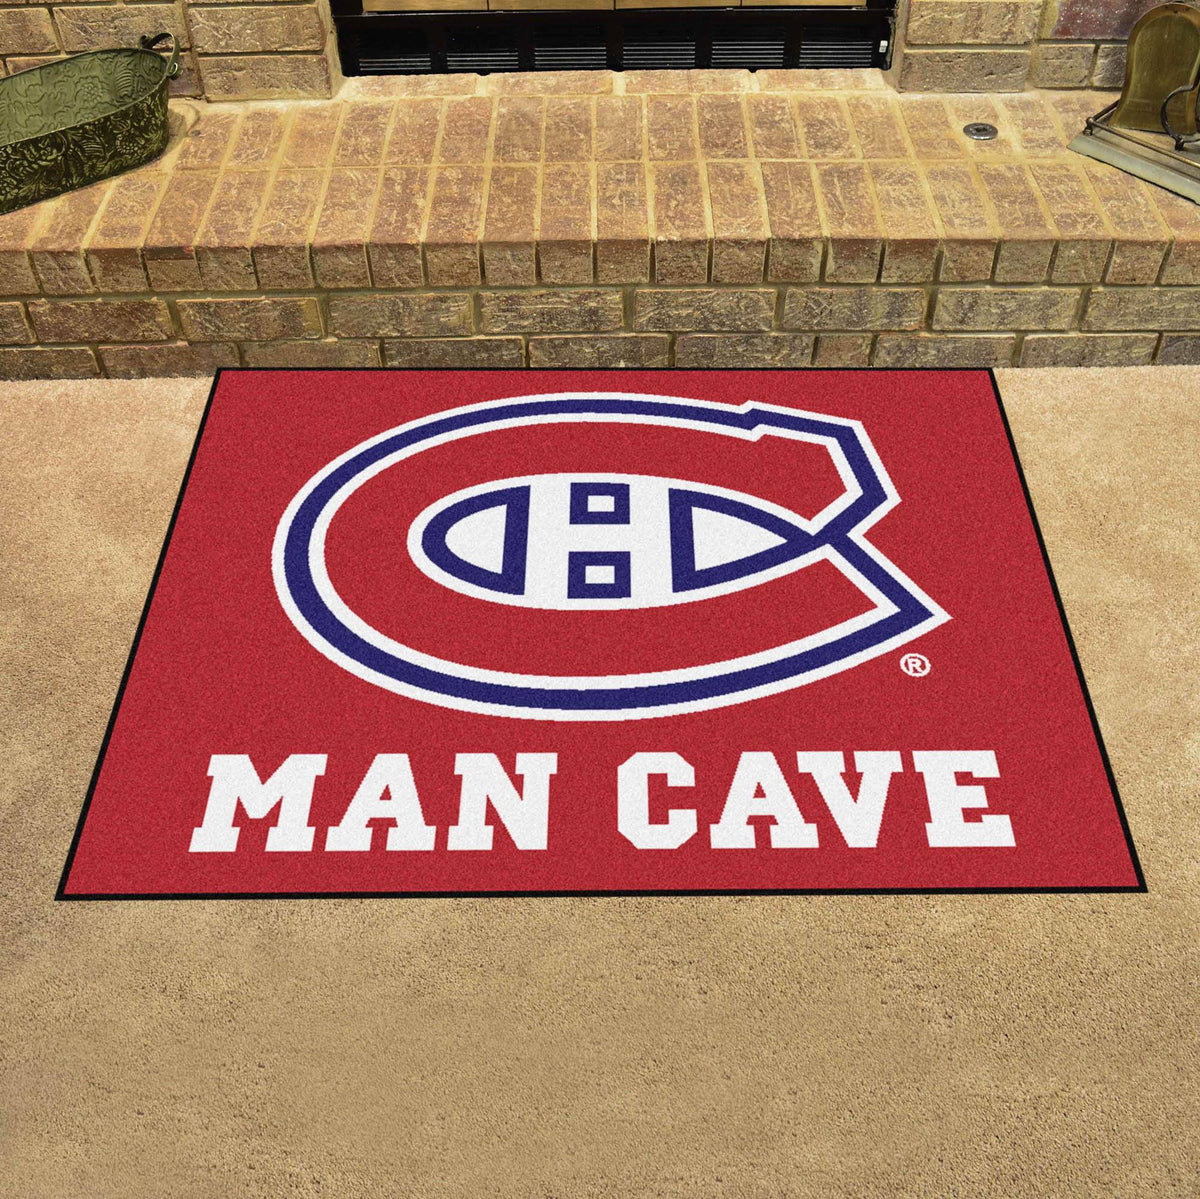 NHL - Man Cave All-Star NHL Mats, Rectangular Mats, Man Cave All-Star Mat, NHL, Home Fan Mats Montreal Canadiens